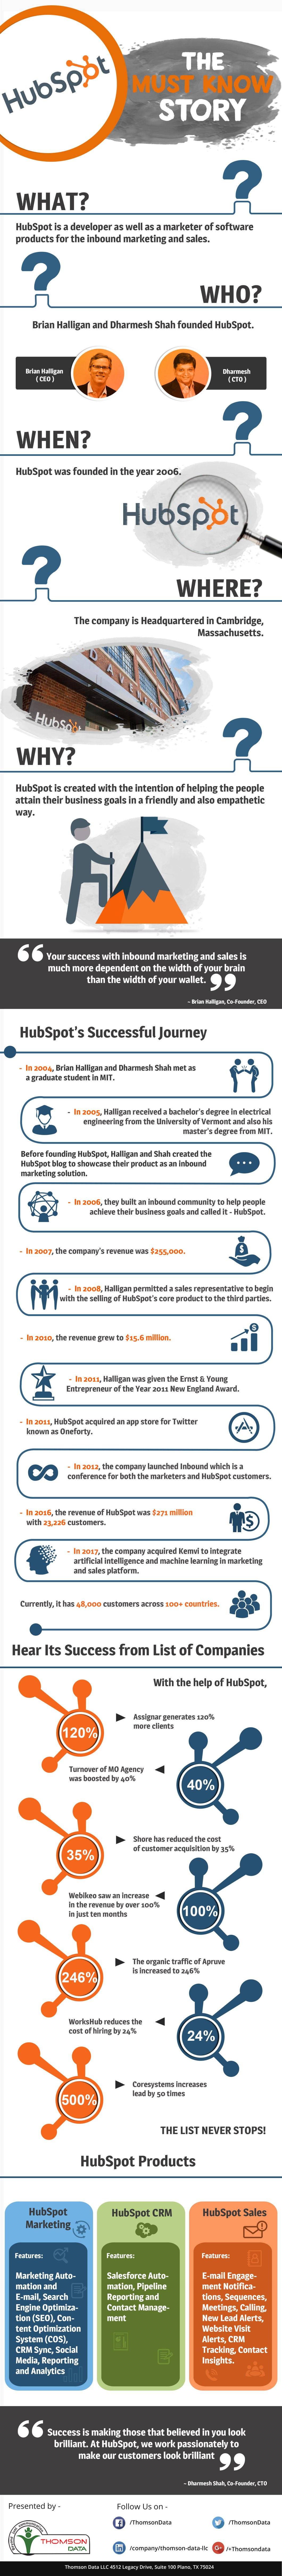 HubSpot: Moving from Strength to Strength - Infographic